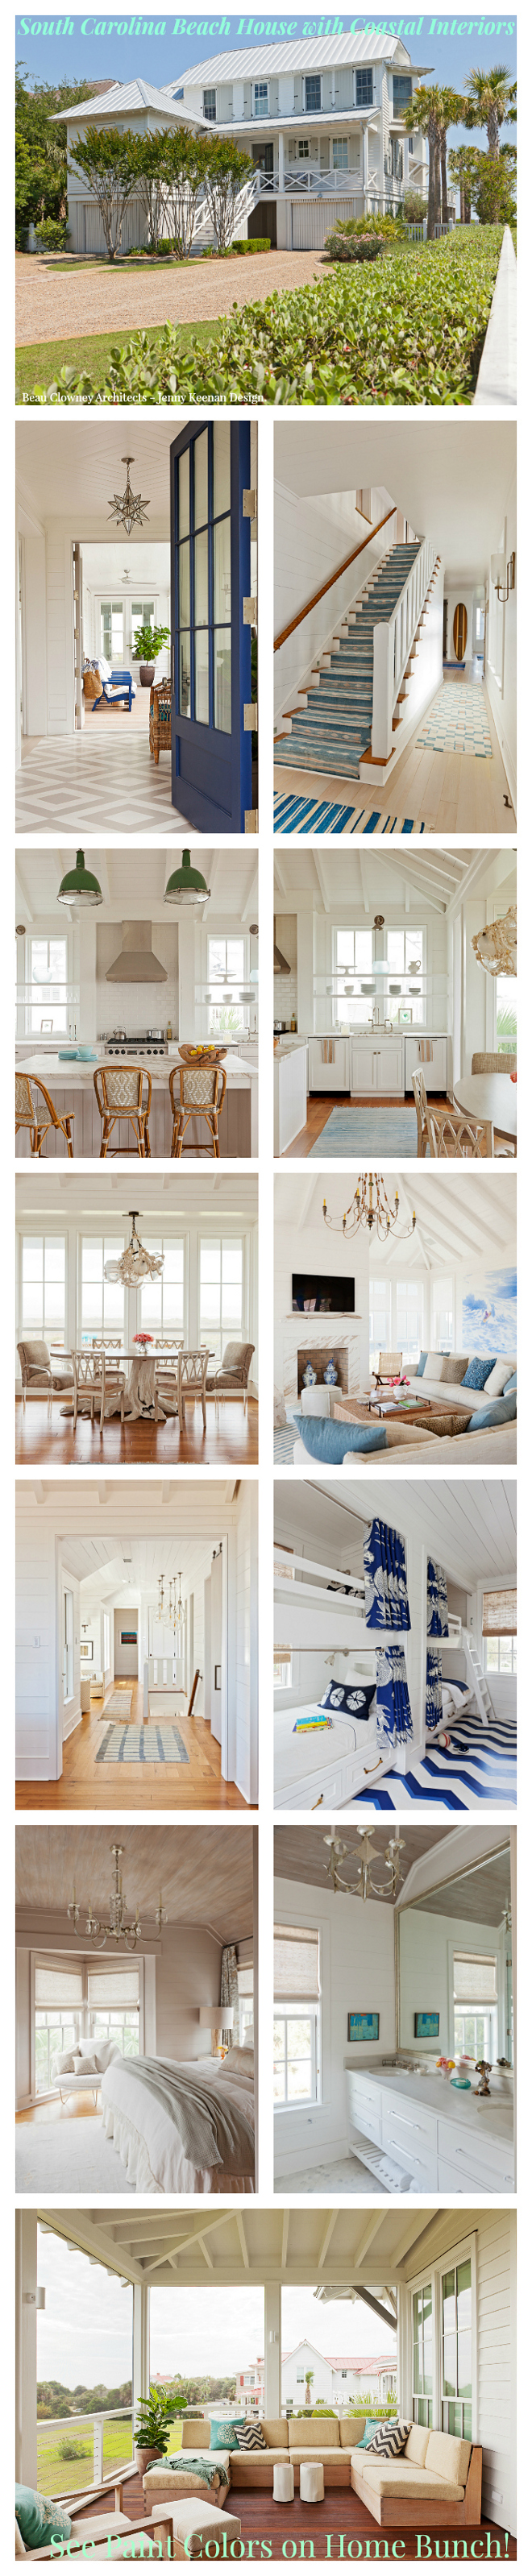 Monday: Beautiful Homes Of Instagram. South Carolina Beach House With Coastal  Interiors.